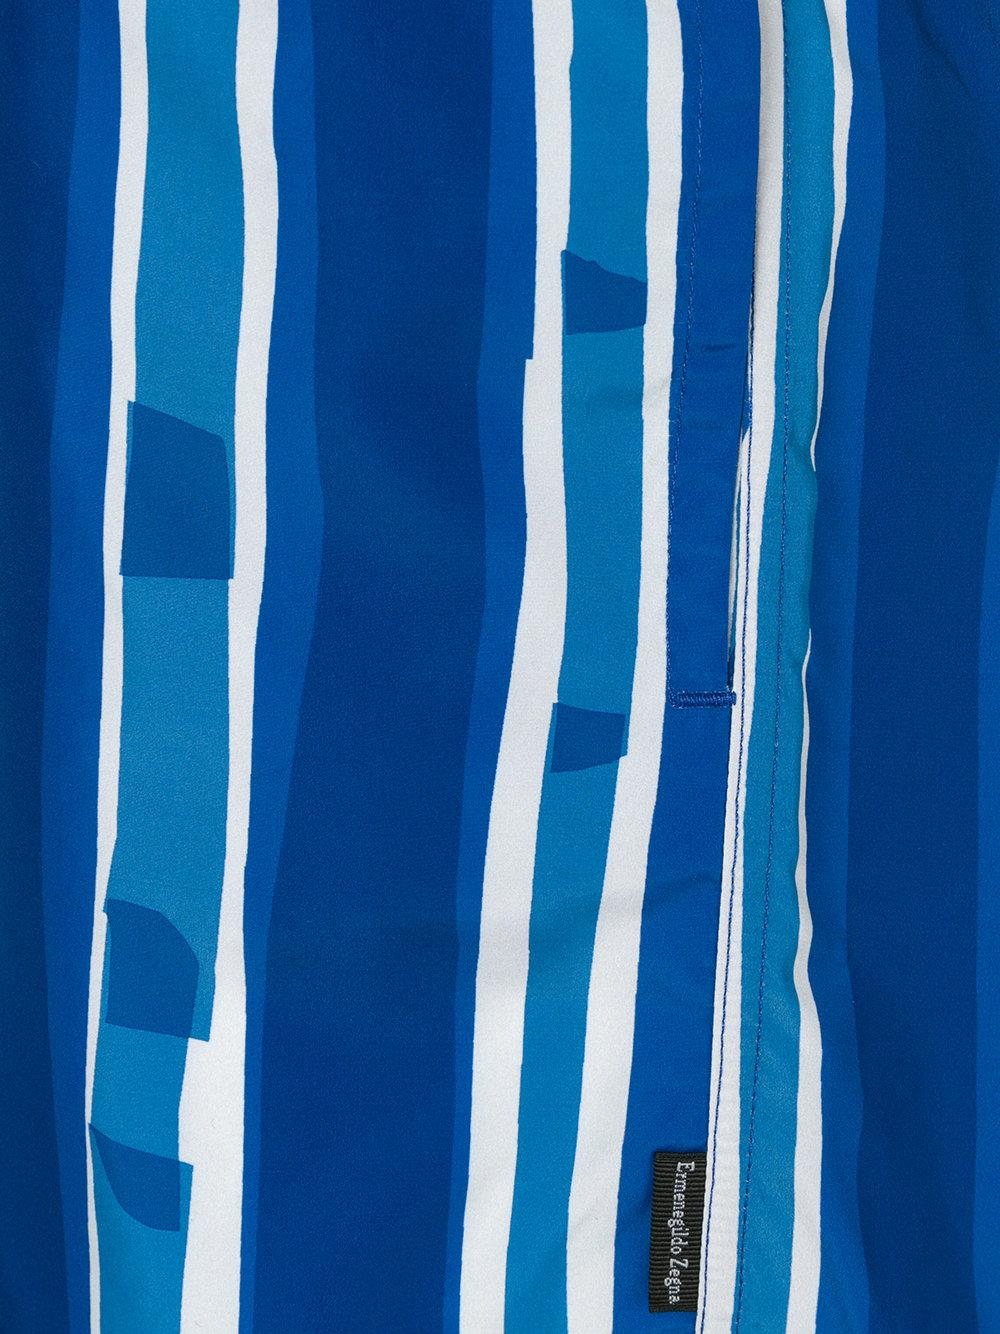 76562a33 Ermenegildo Zegna Blue Striped Swim Shorts for men